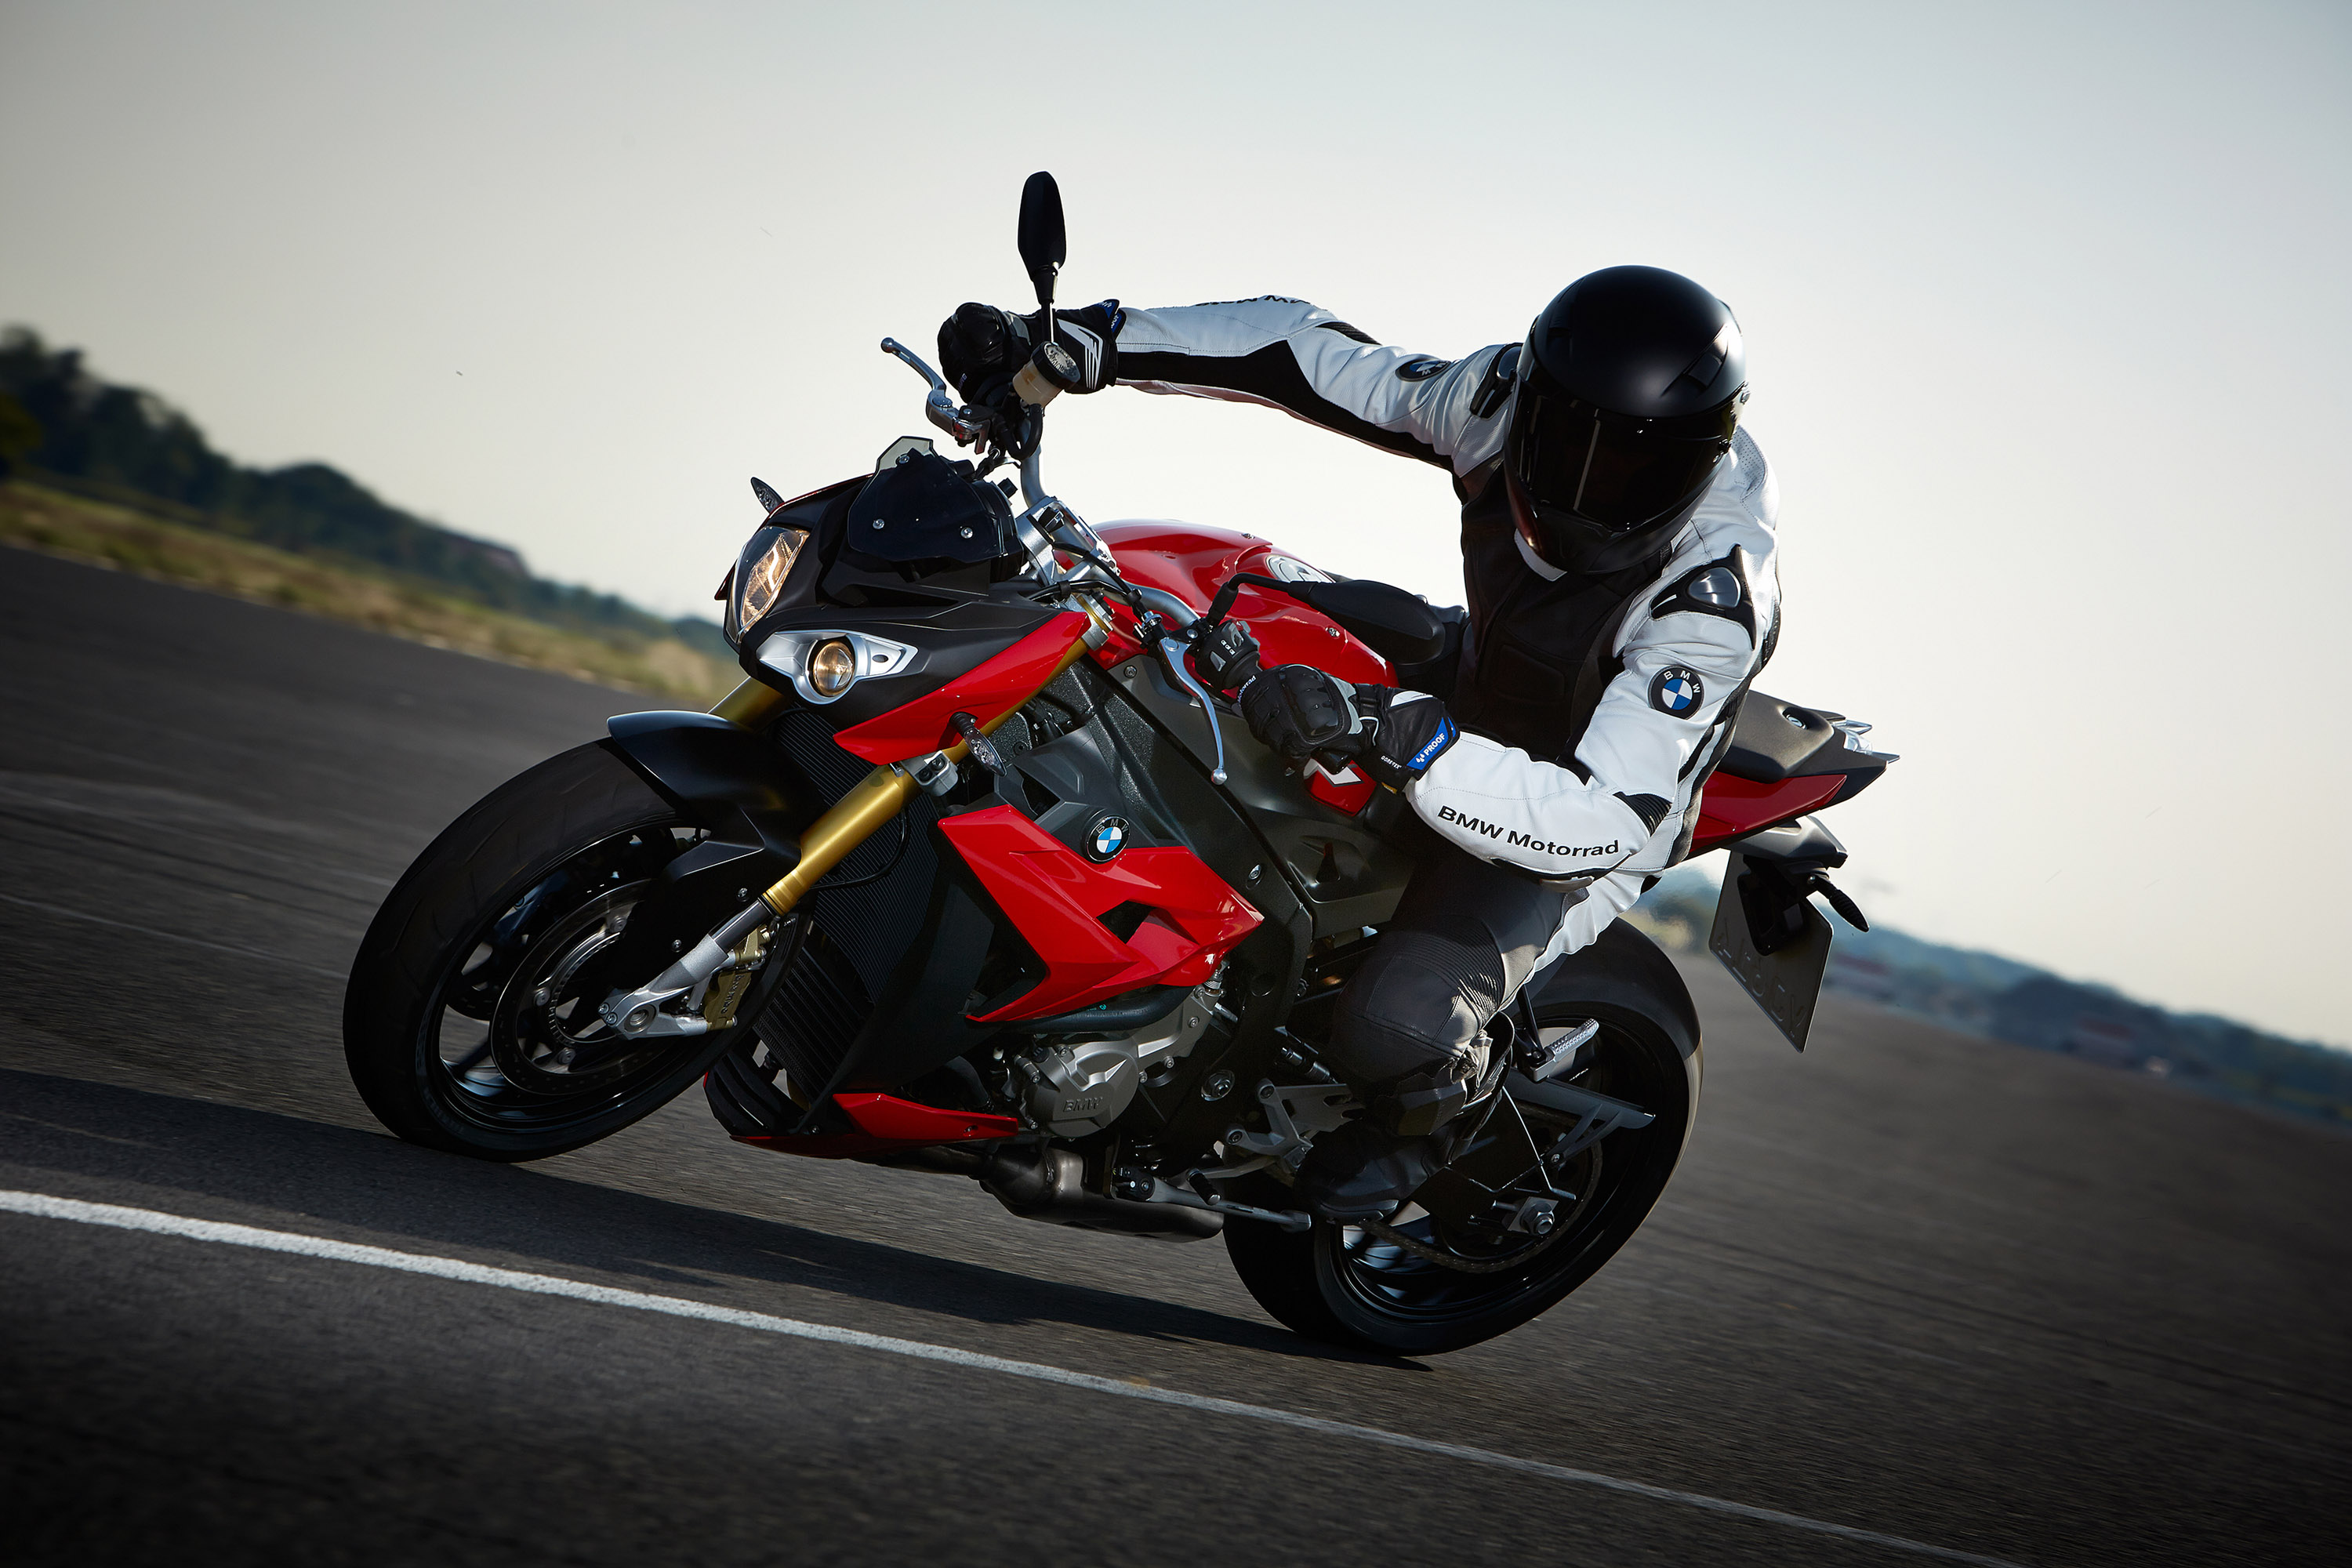 2014 bmw s 1000 r 160hp and 112nm. Black Bedroom Furniture Sets. Home Design Ideas